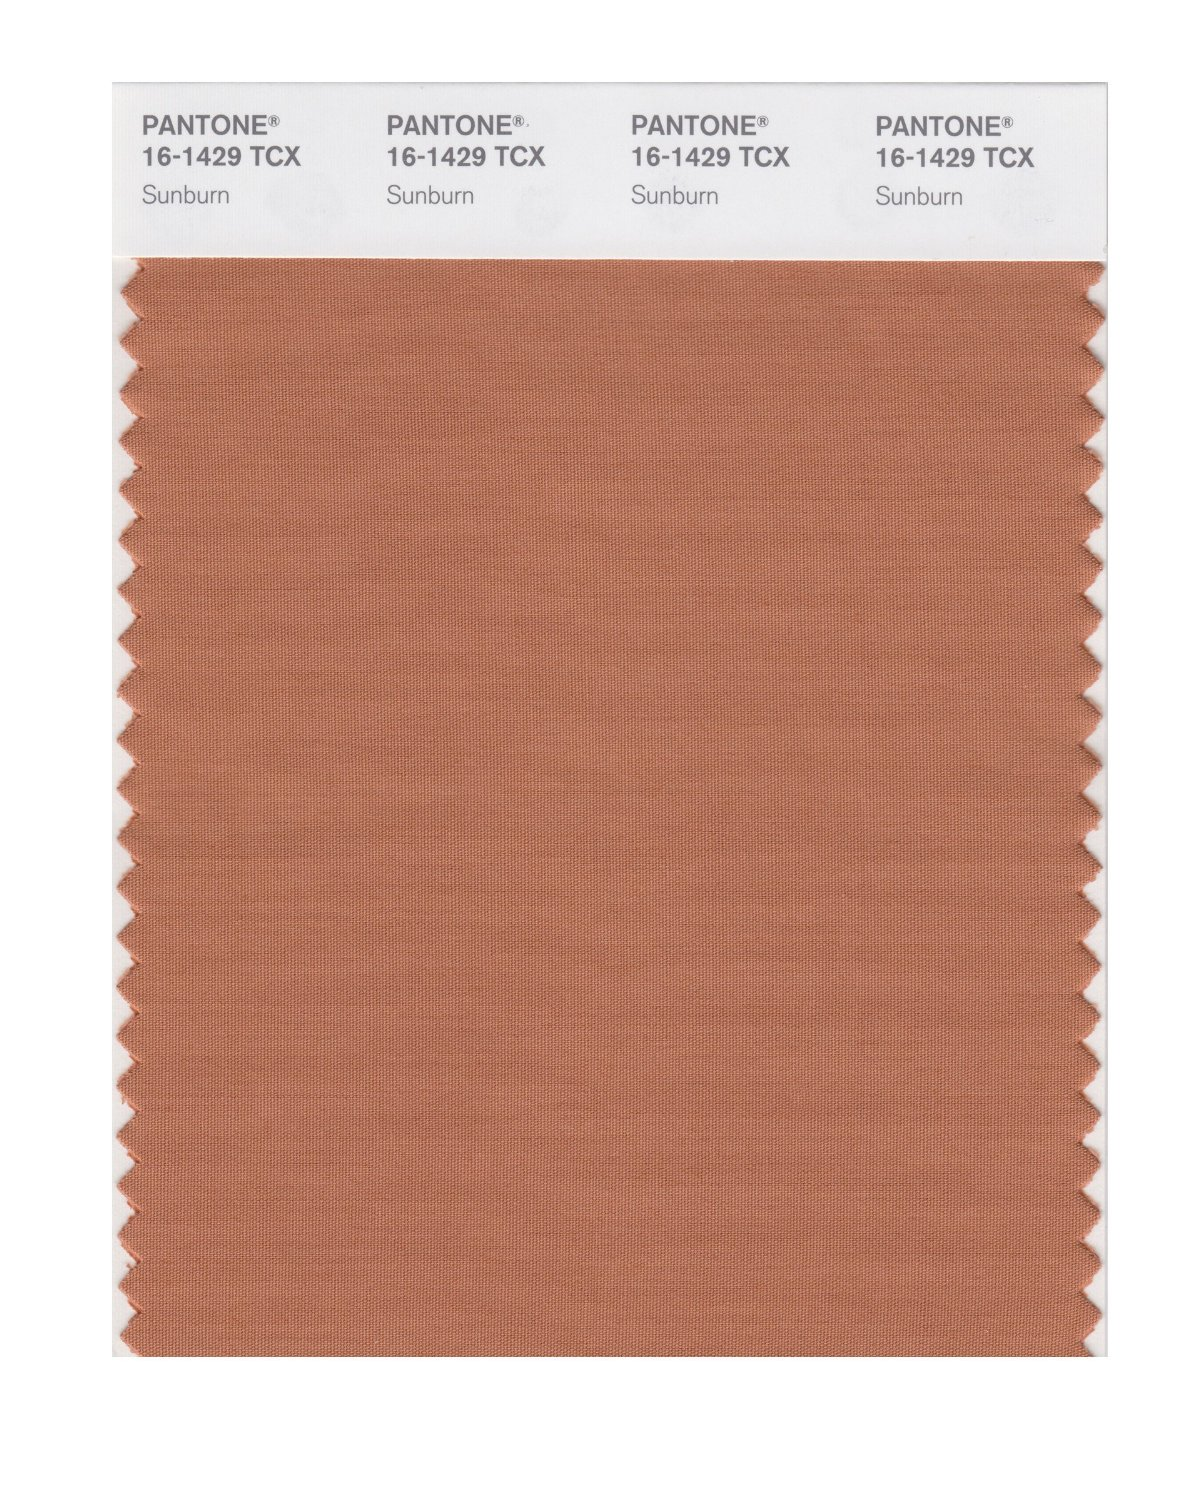 Pantone Smart Swatch 16-1429 Sunburn